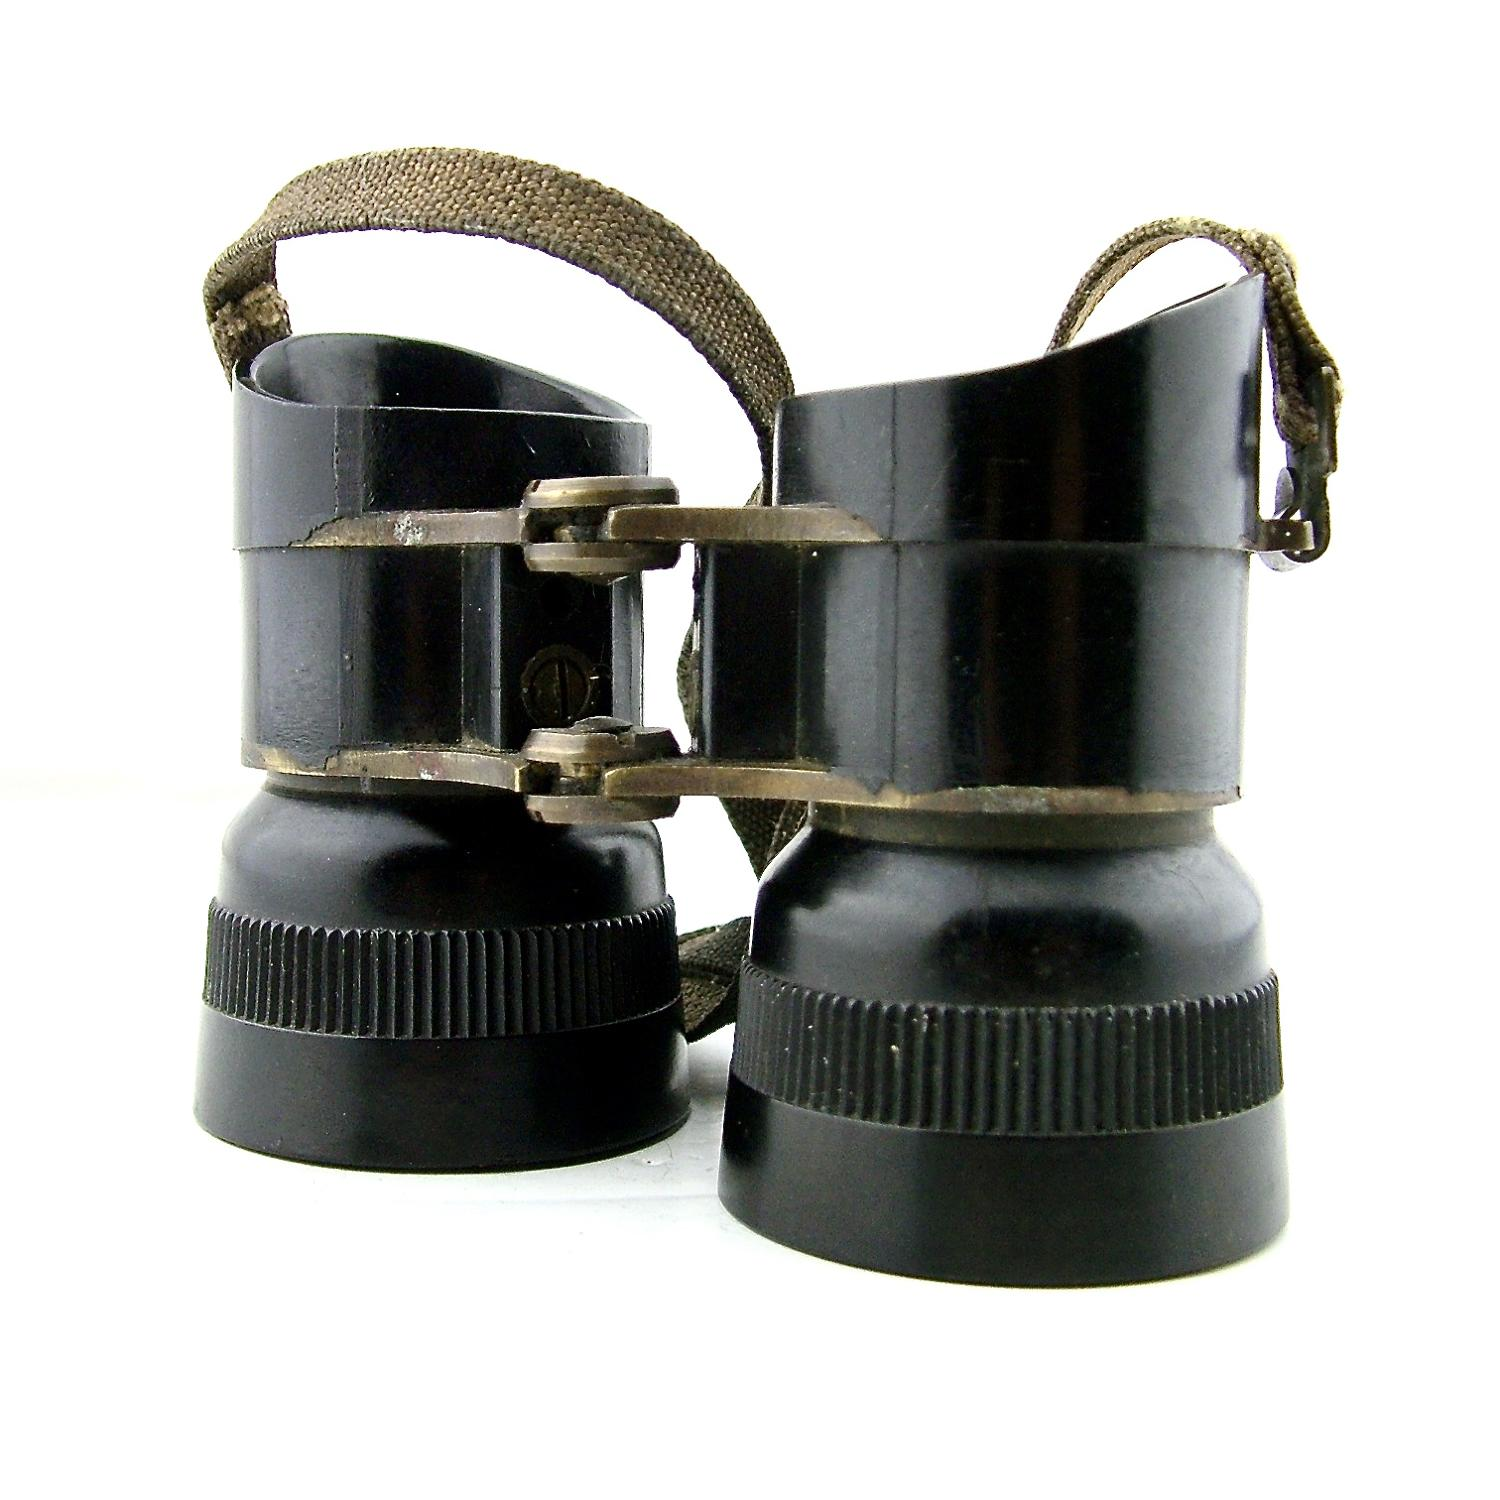 British airborne forces binoculars